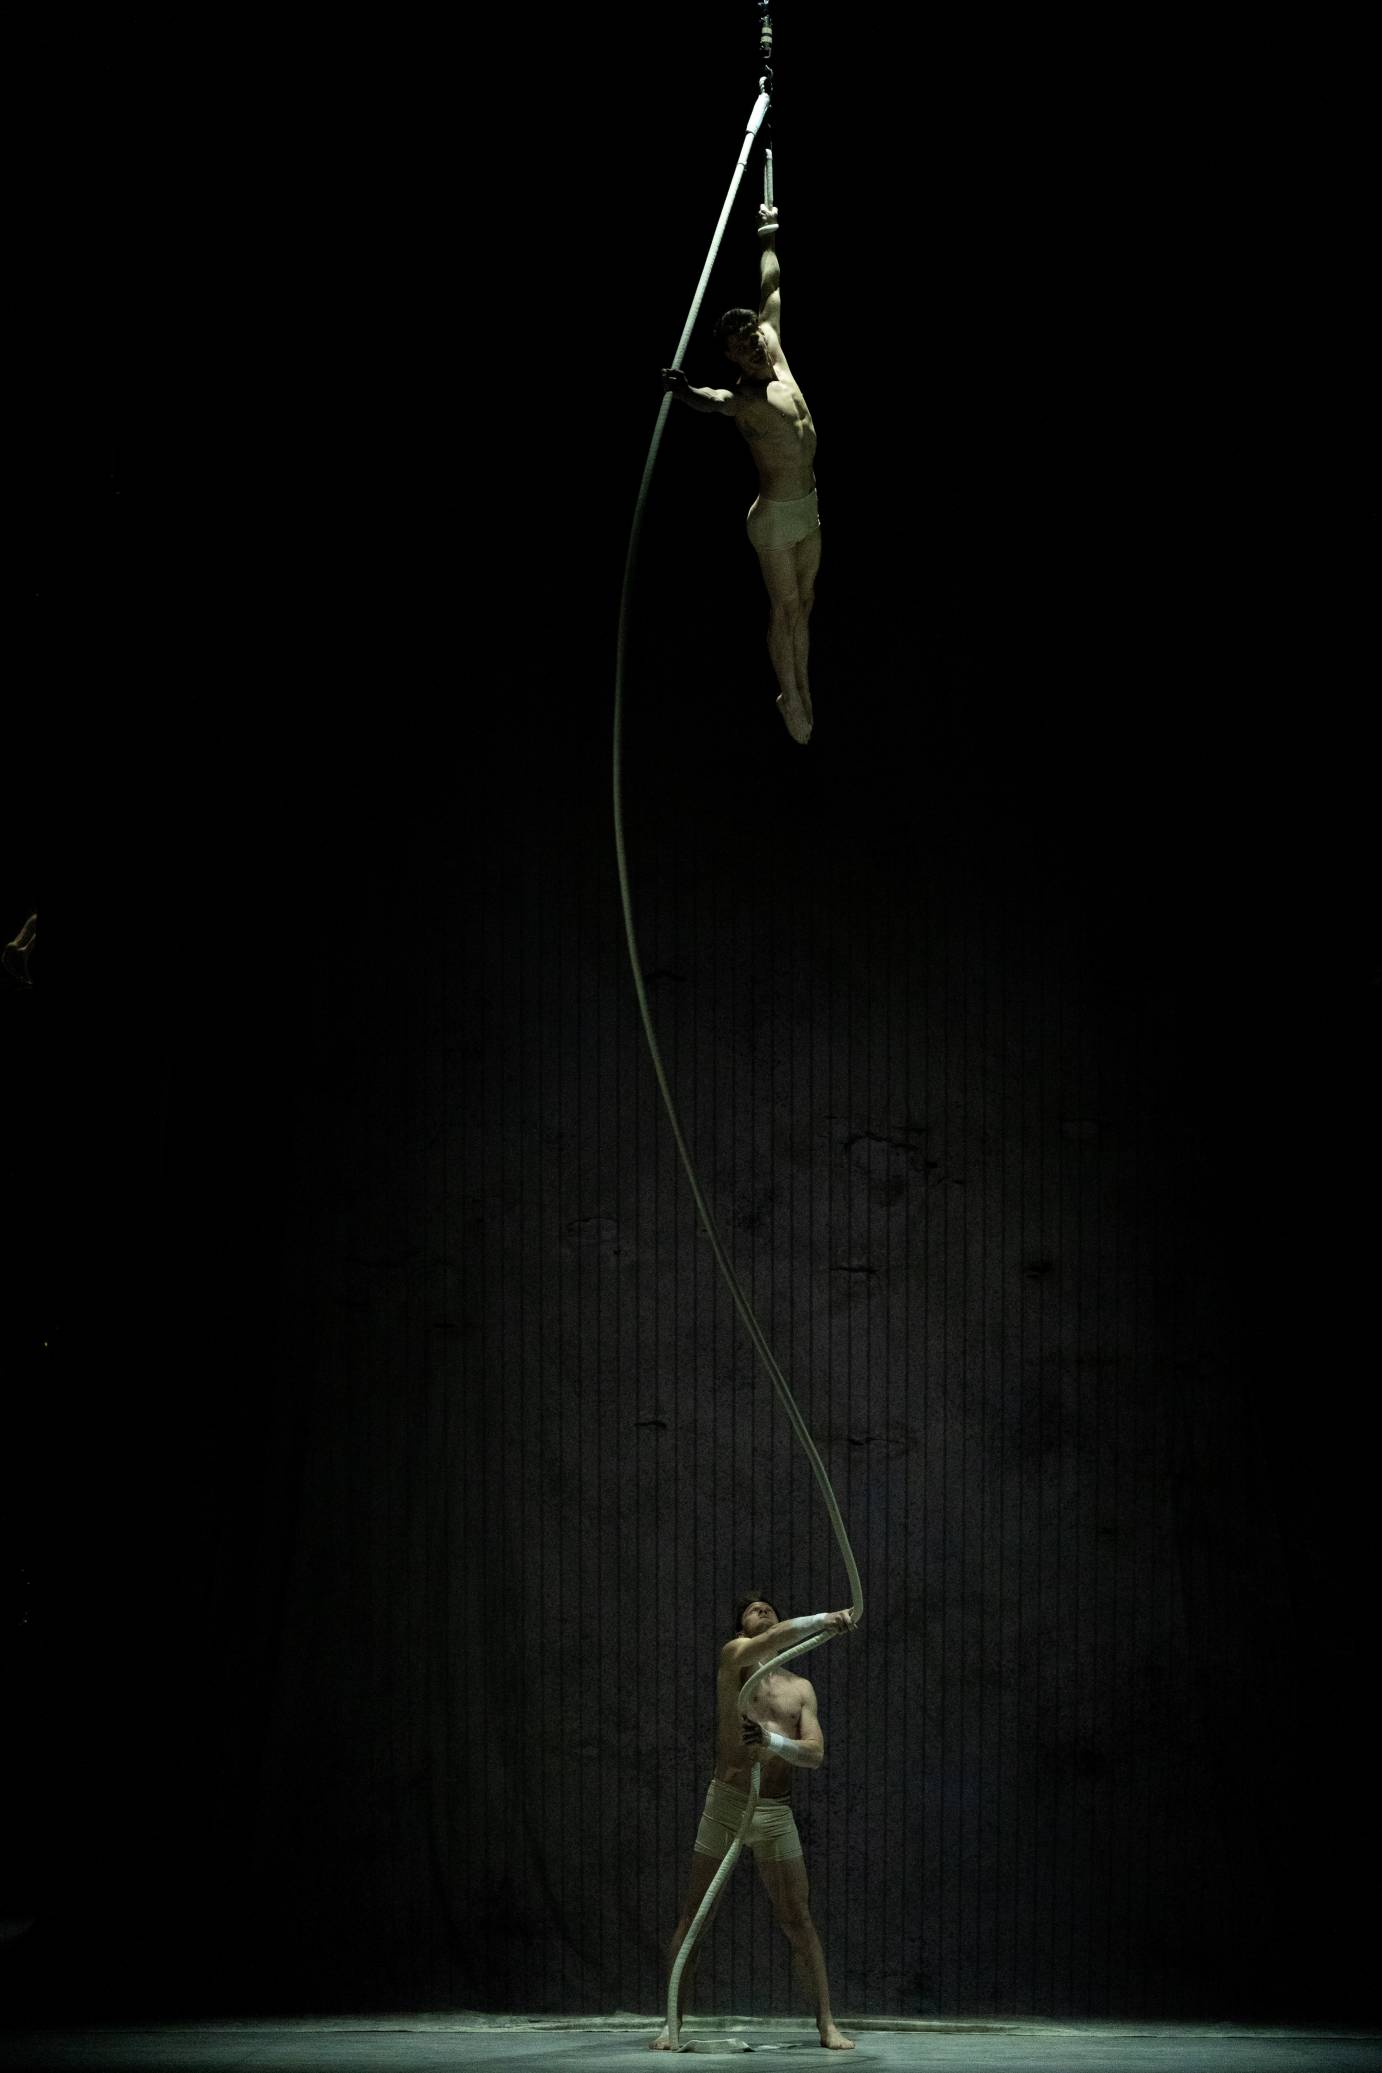 One man stands on a trapeze while another stands below him